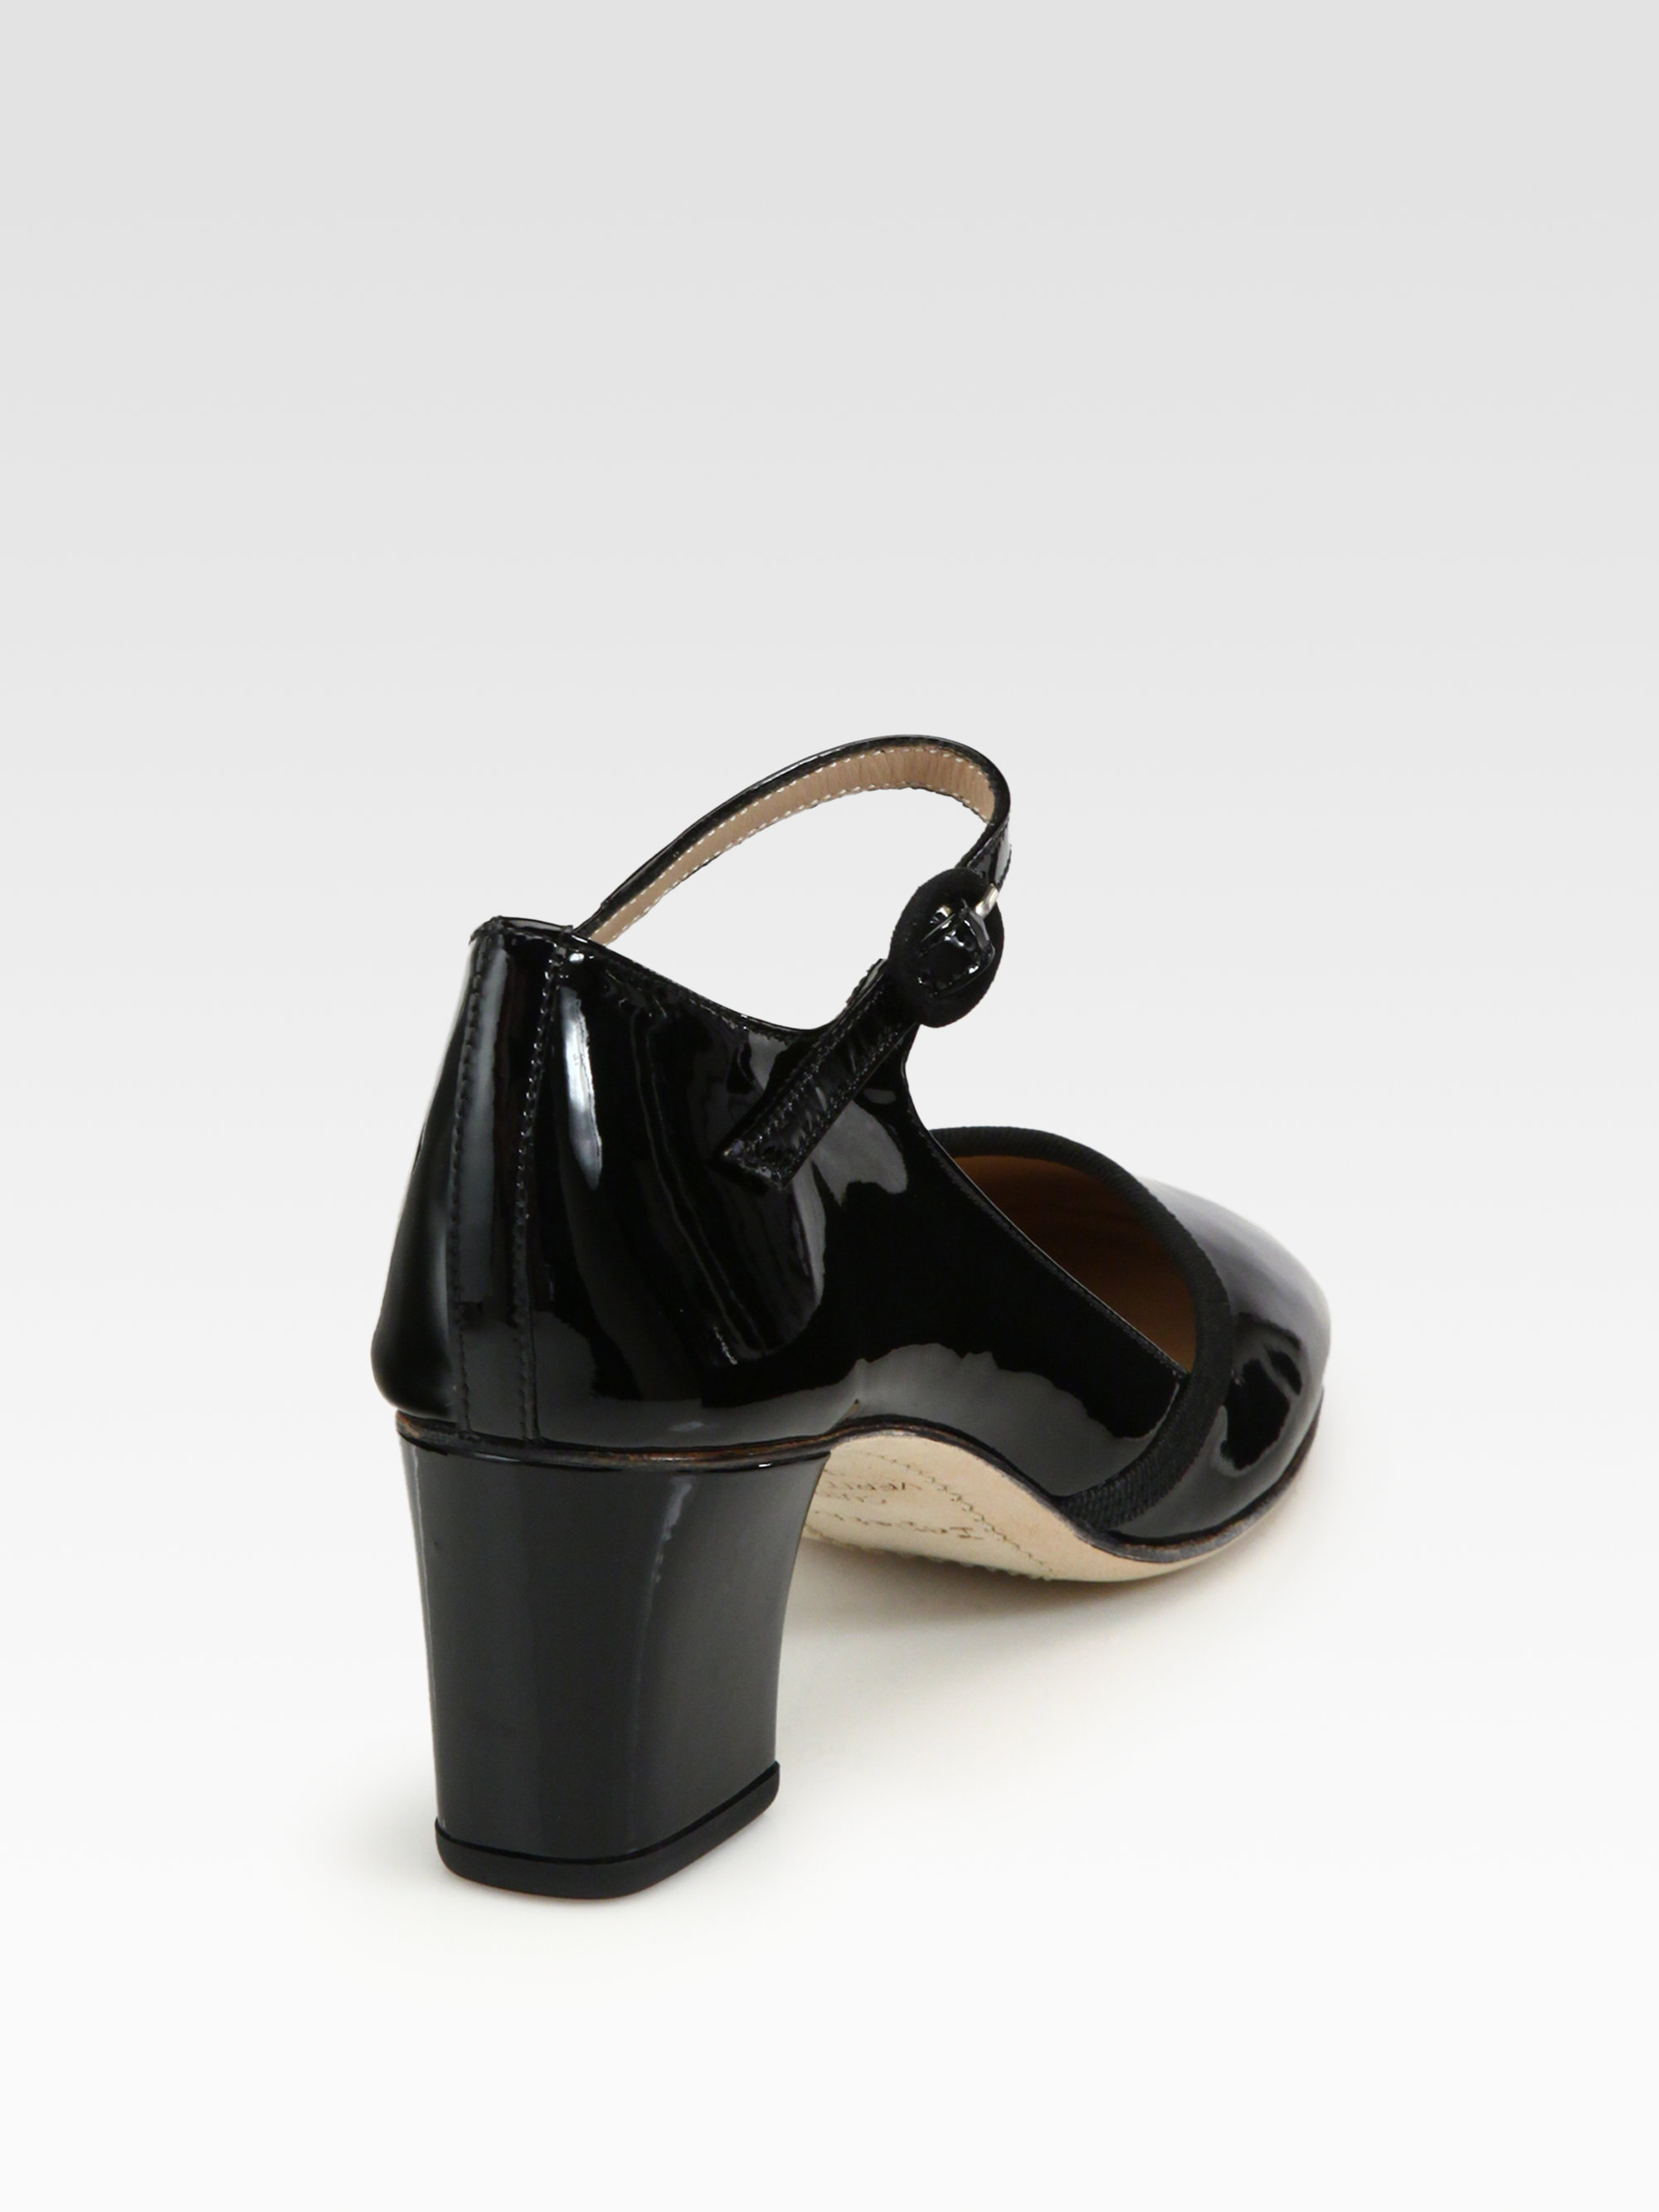 Repetto Patent Leather Mary Jane Pumps free shipping discount low cost online cheap sale deals footlocker wiki cheap online b0OKVehgM1